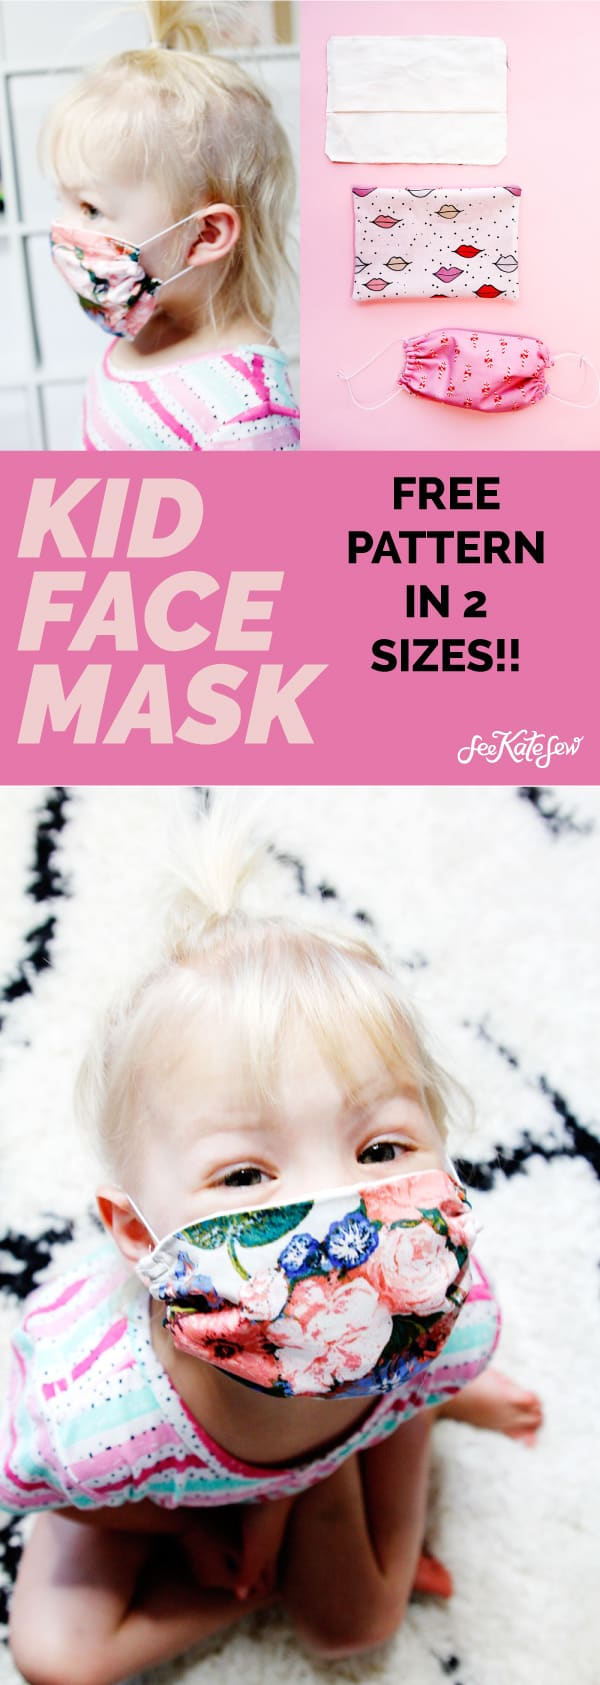 How to make a face mask for kids FREE PATTERN